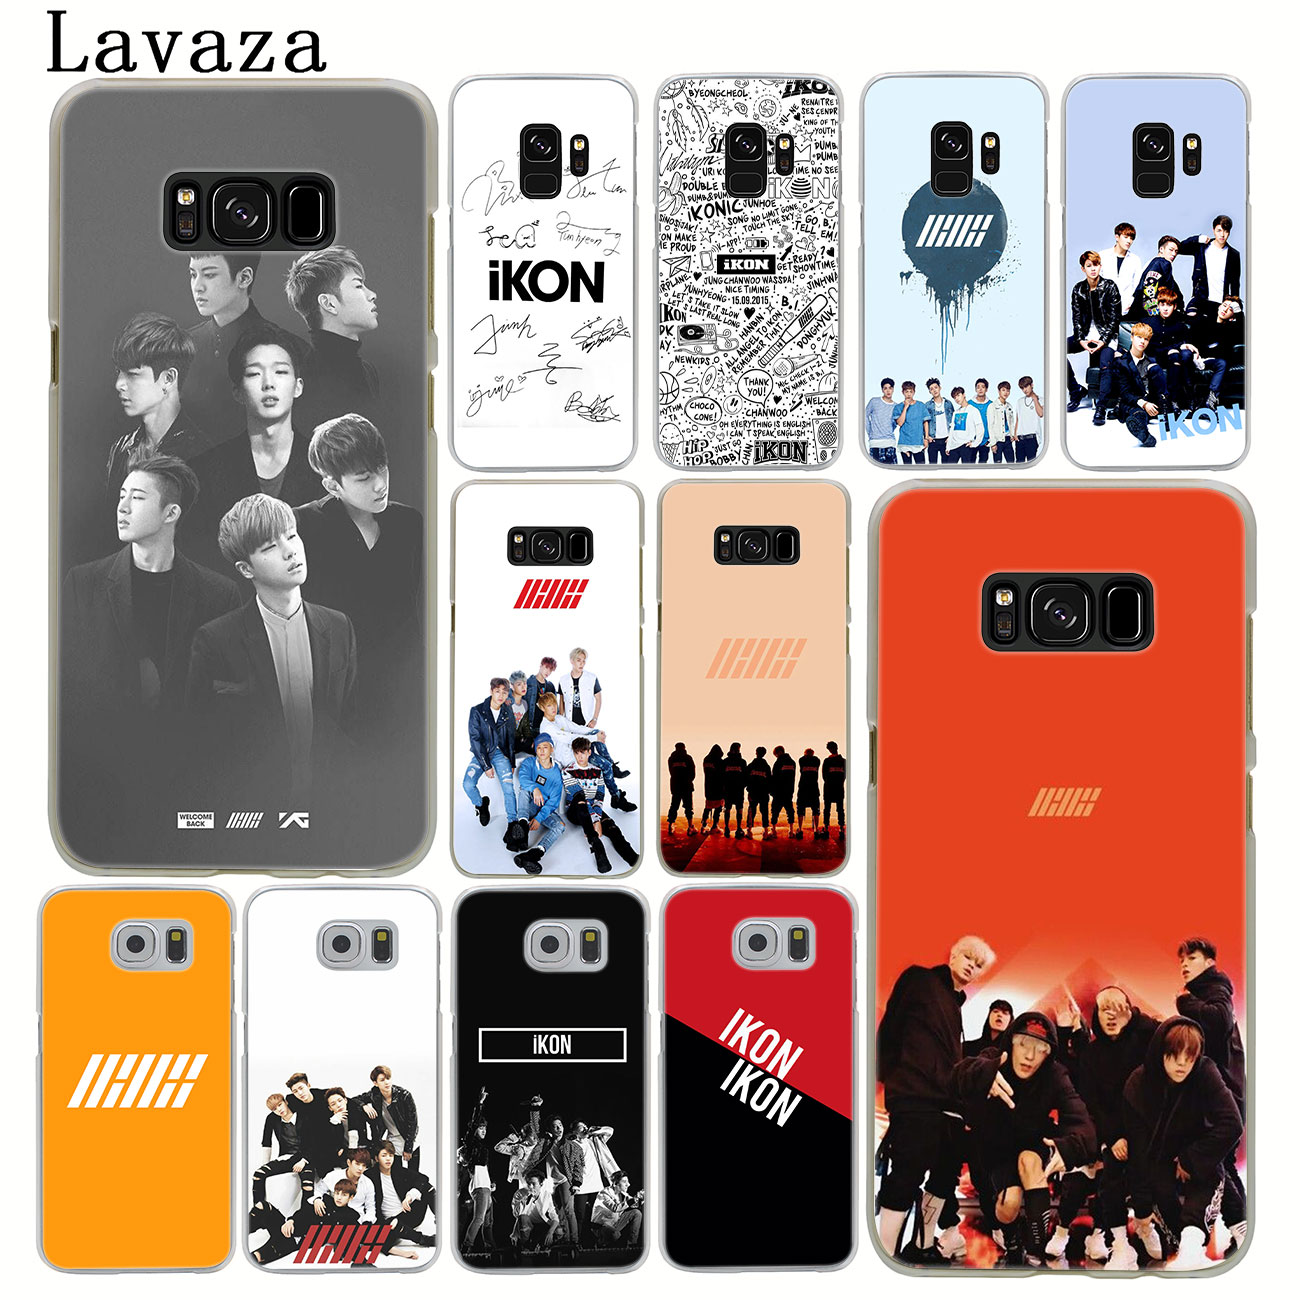 US $1 32 30% OFF|Lavaza music ikon kpop Phone Case for Samsung Galaxy A9 A8  A7 A6 Plus 2018 A5 A3 2017 2016 2015 Note 9 8 A8Plus Cover-in Half-wrapped